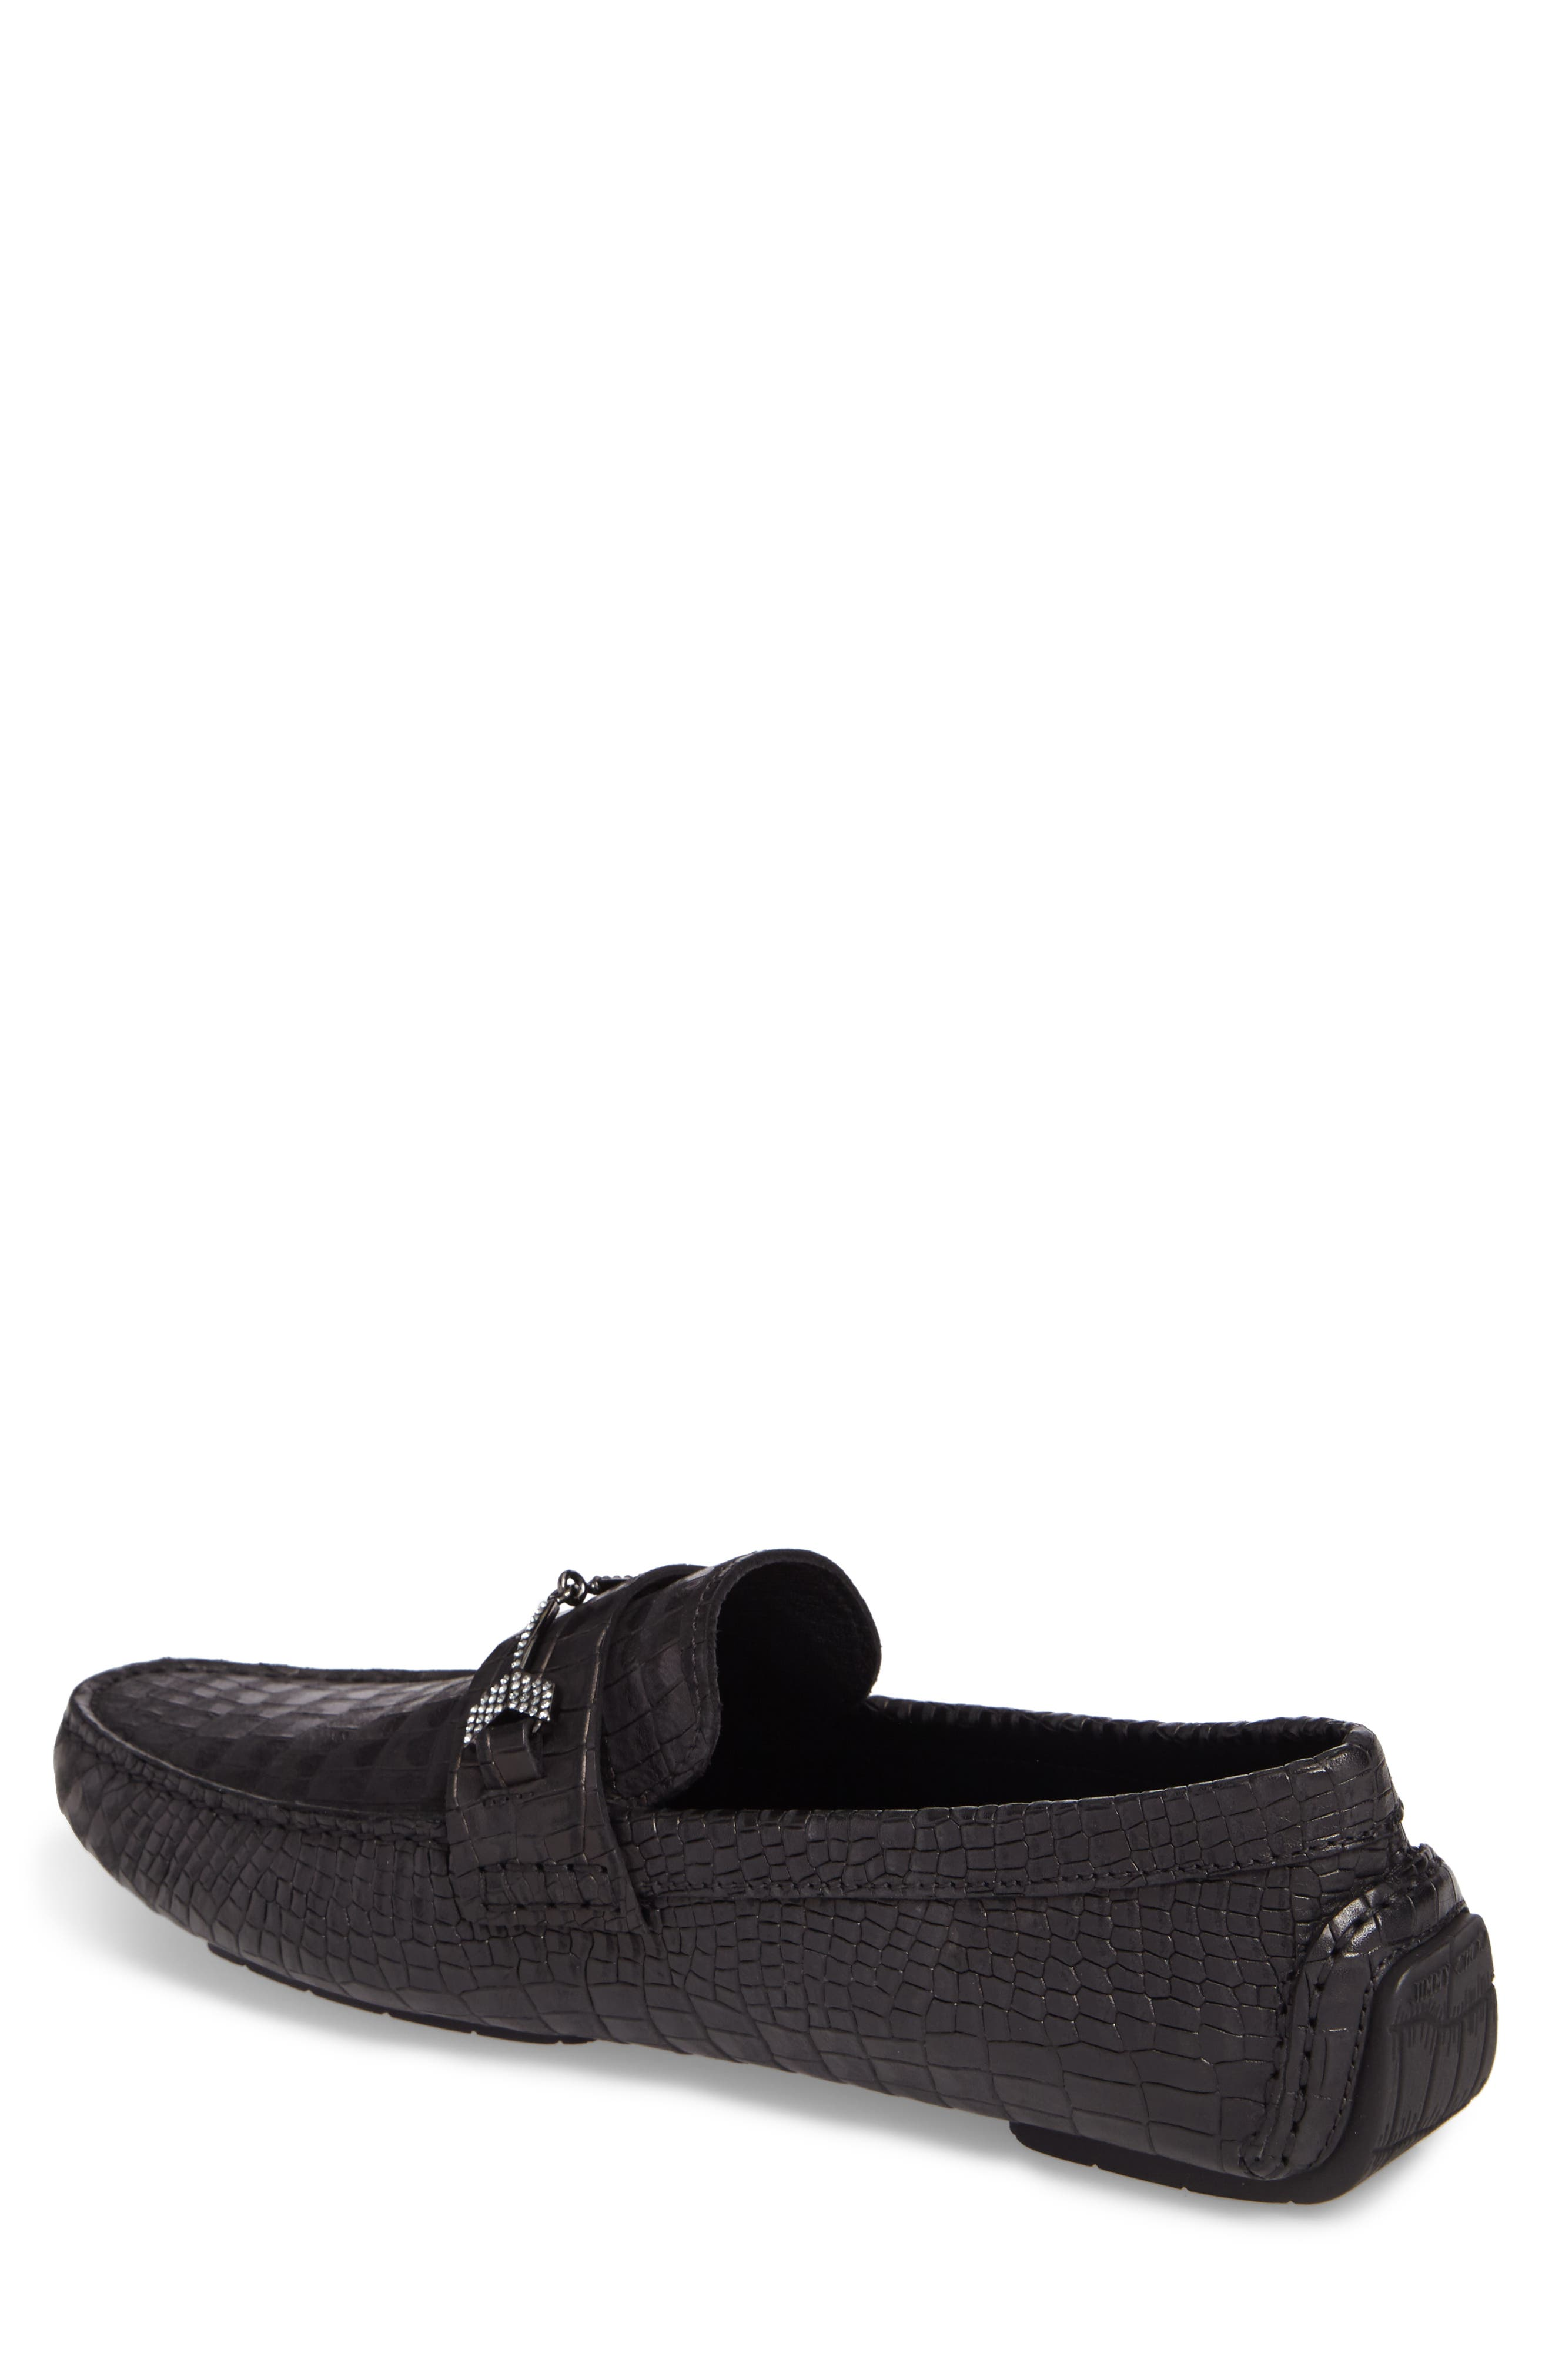 Brewer Croc Textured Driving Loafer,                             Alternate thumbnail 2, color,                             Black